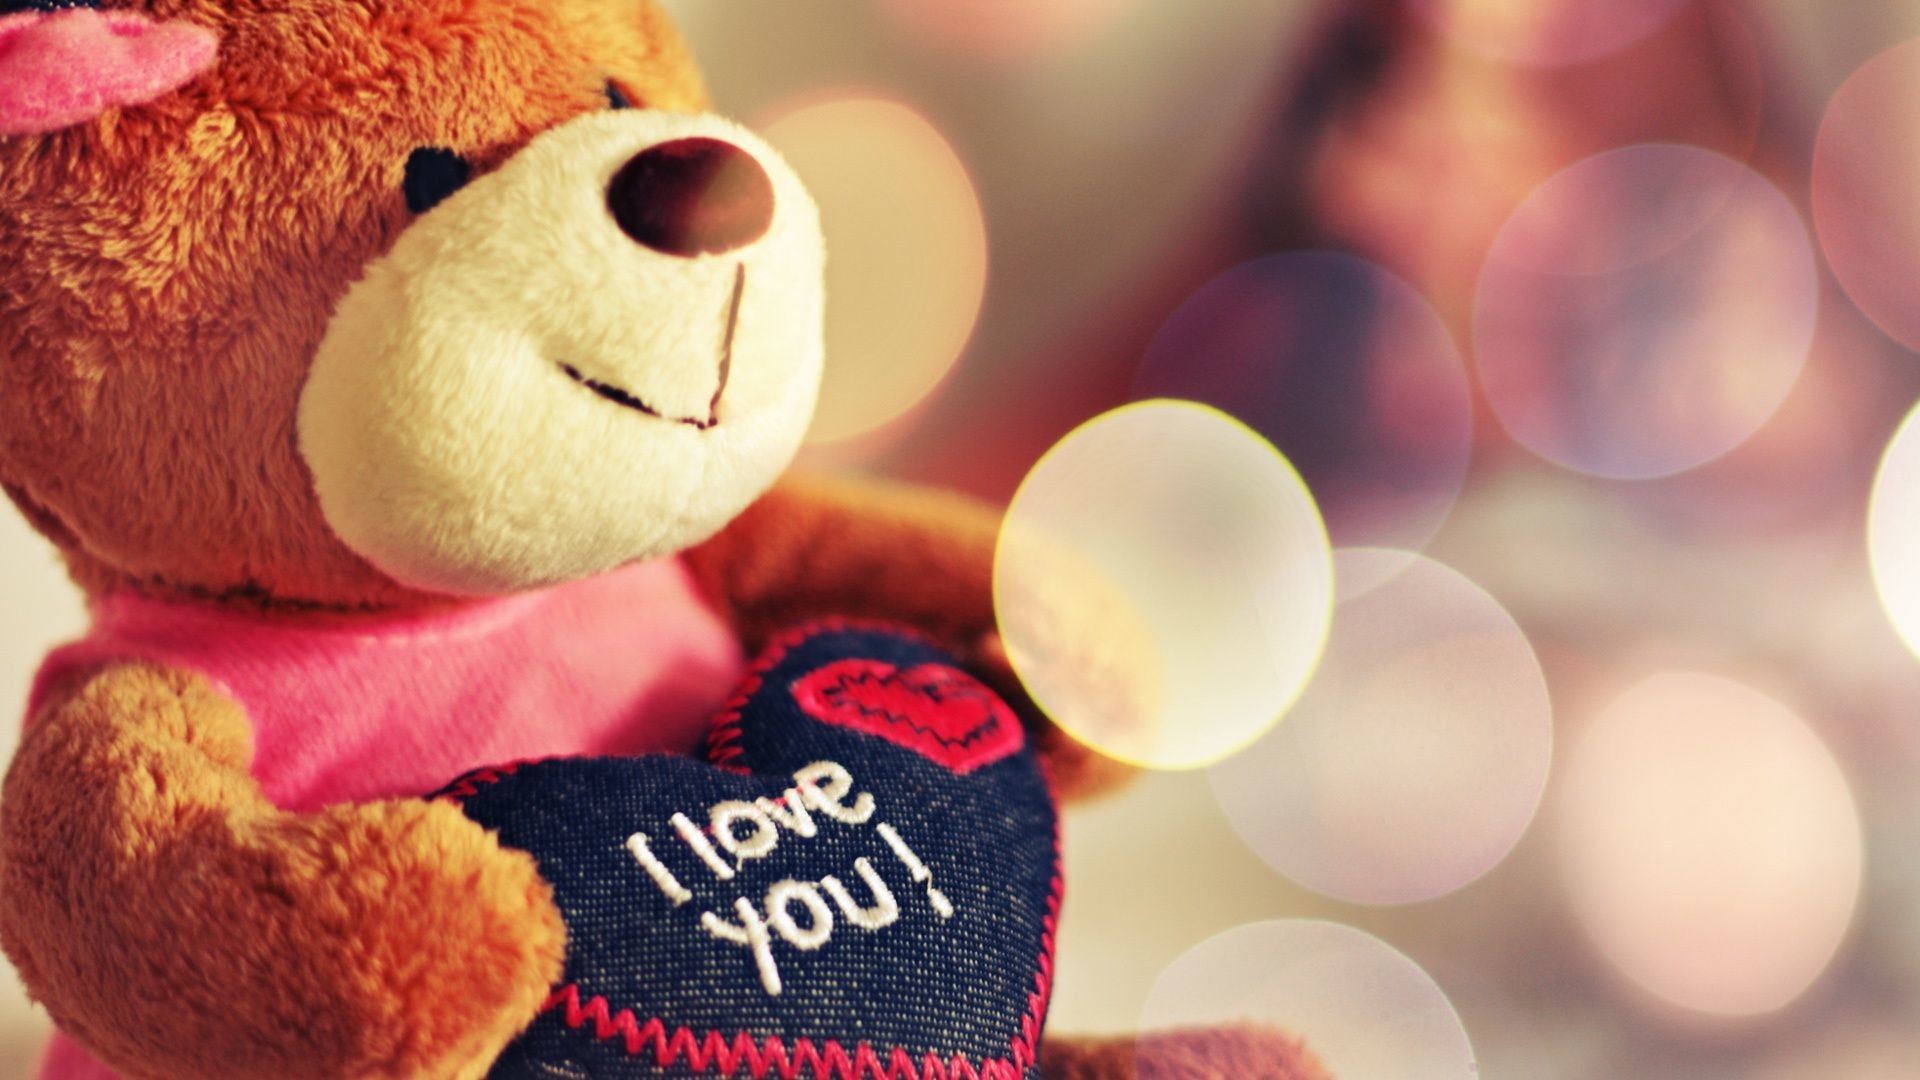 Hd Love Wallpaper 75 Pictures